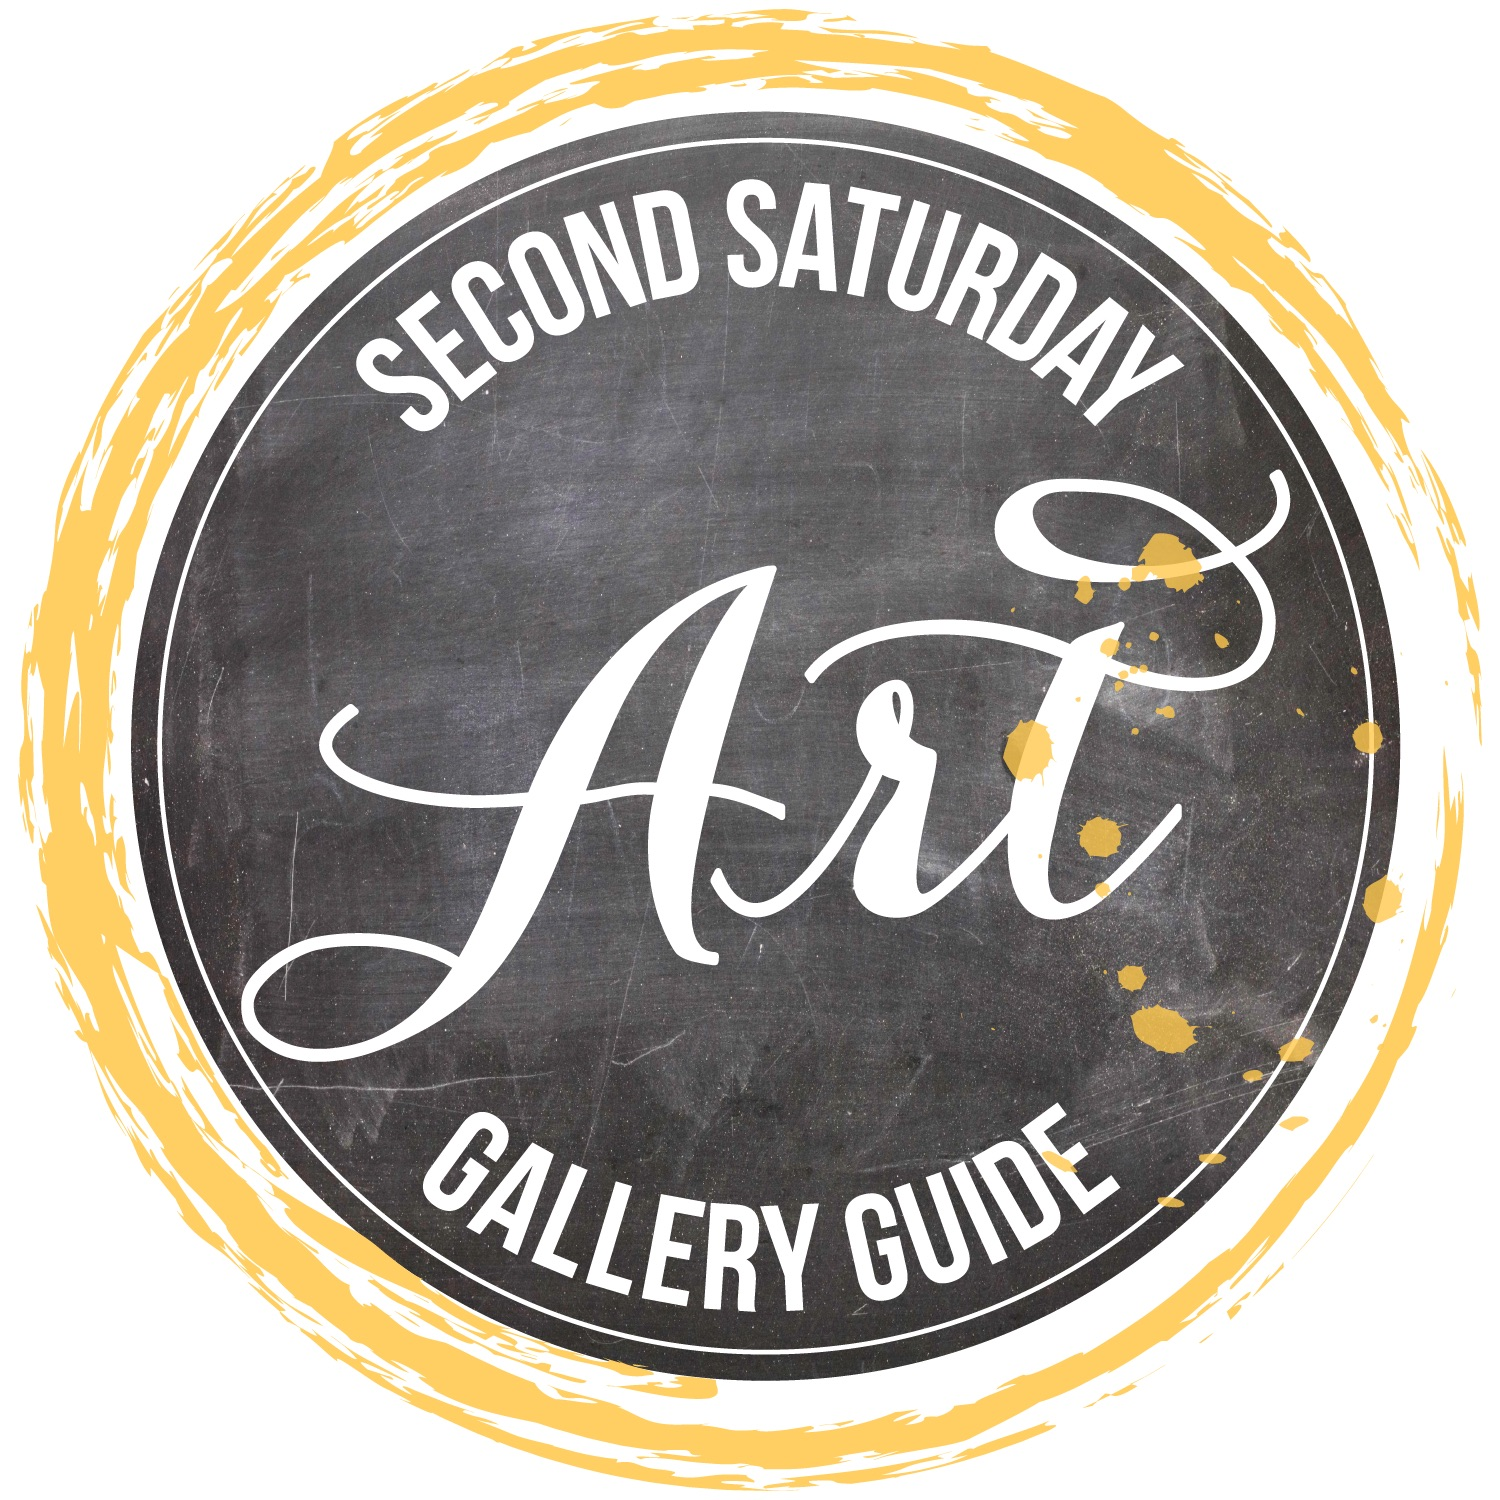 Art HAPPENINGS in Beacon, New York, FOR JULY 2019 and beyond!